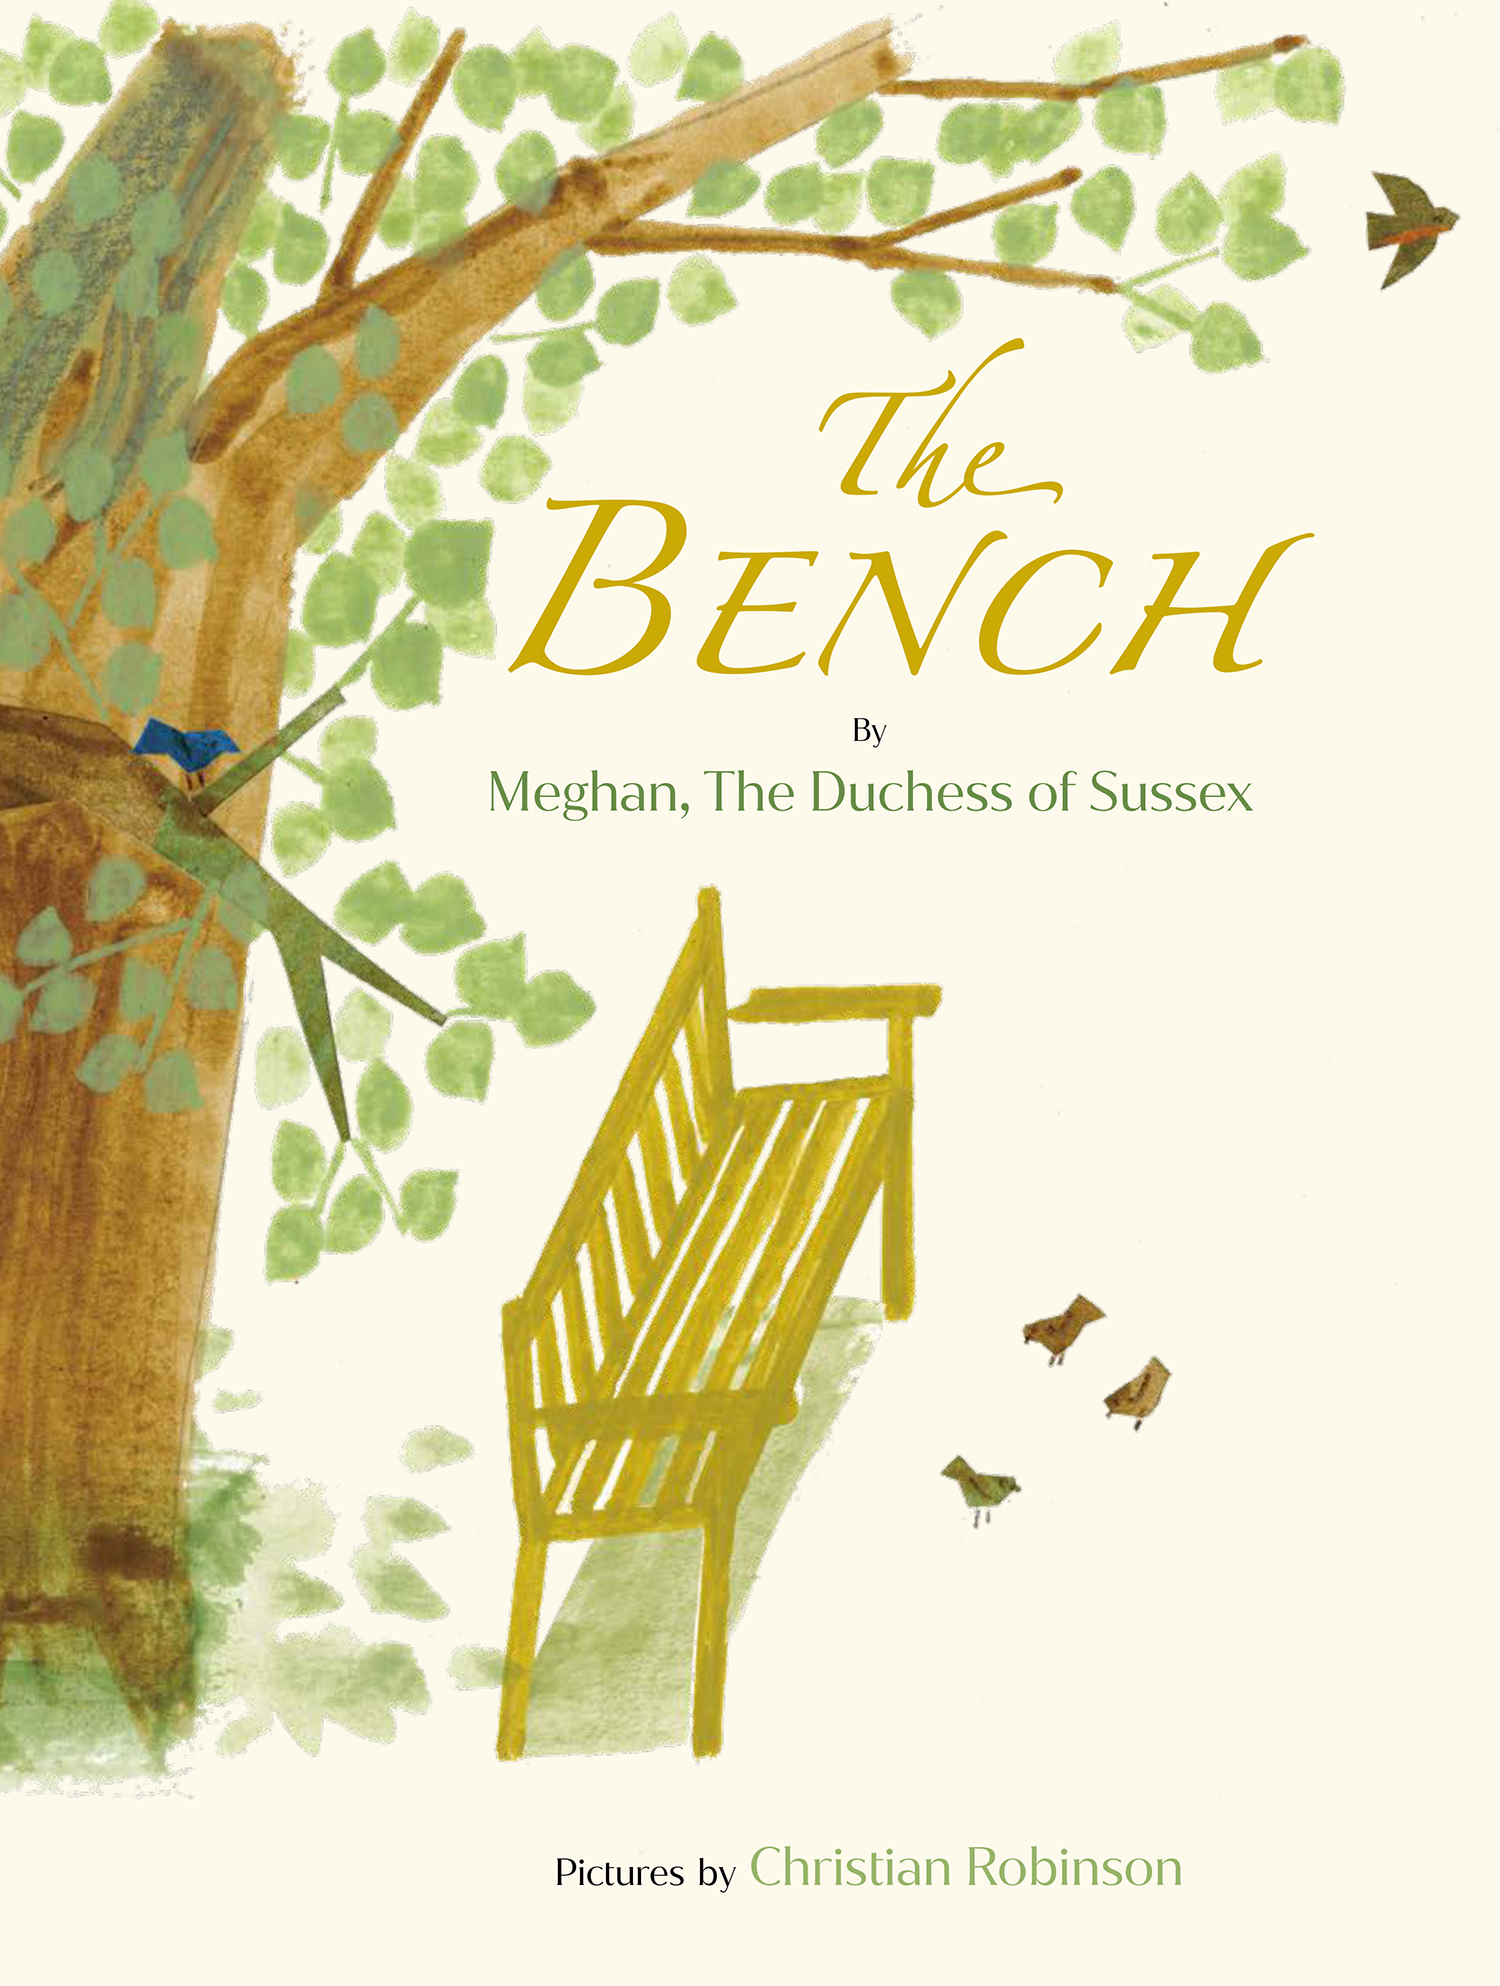 meghan markle's children book the bench cover